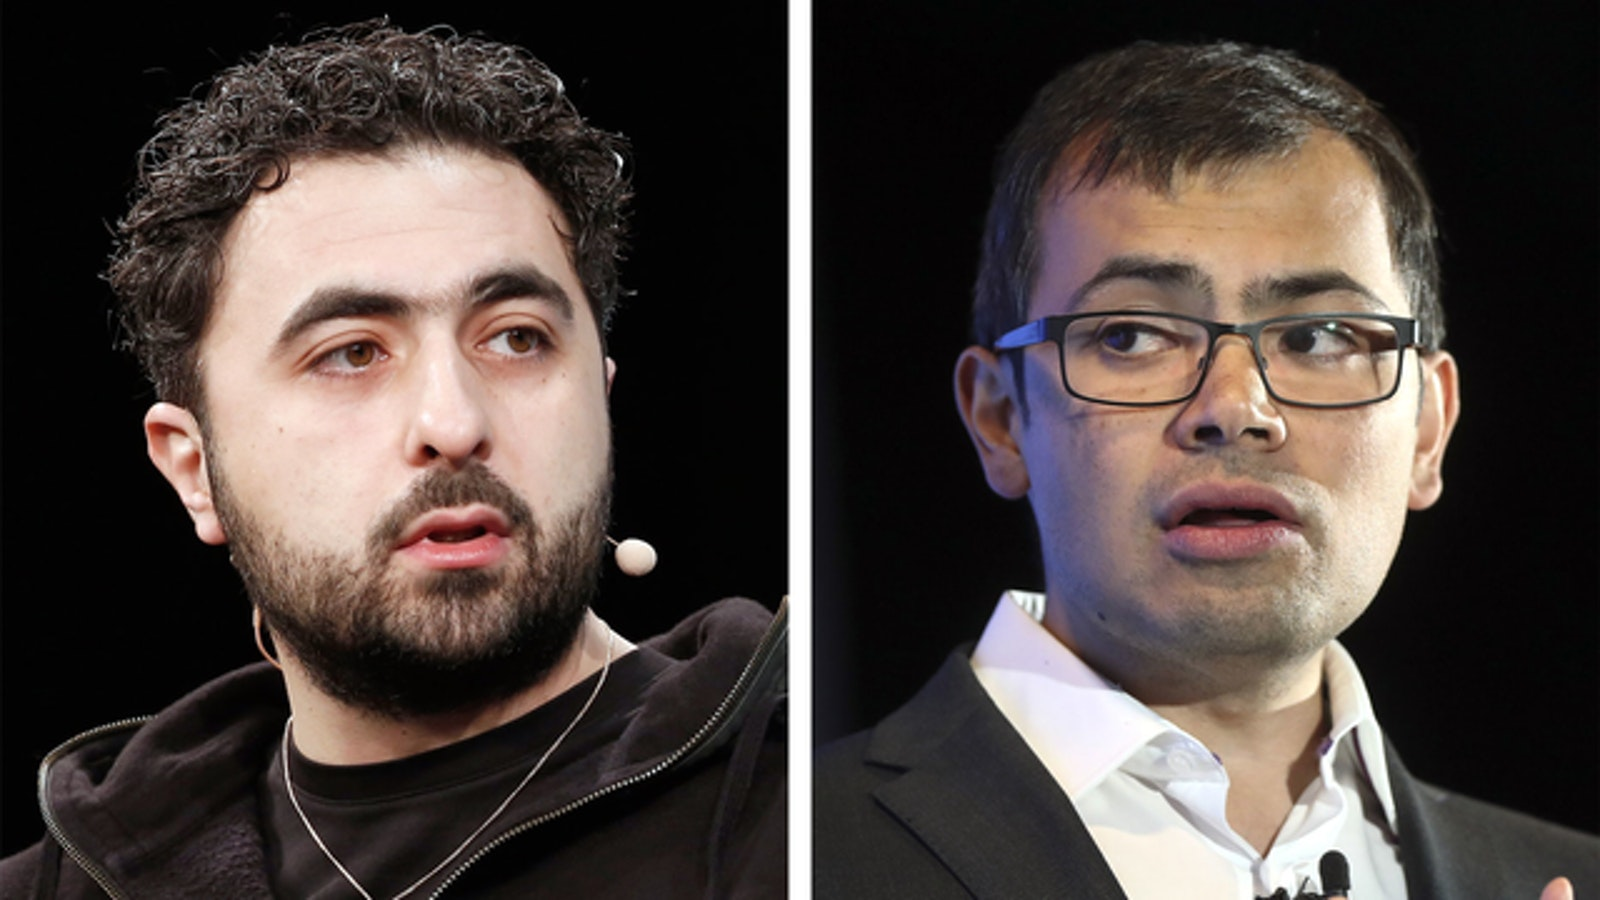 DeepMind co-founders Mustafa Suleyman and Demis Hassabis. Photos by Bloomberg and Flickr/TechCrunch.